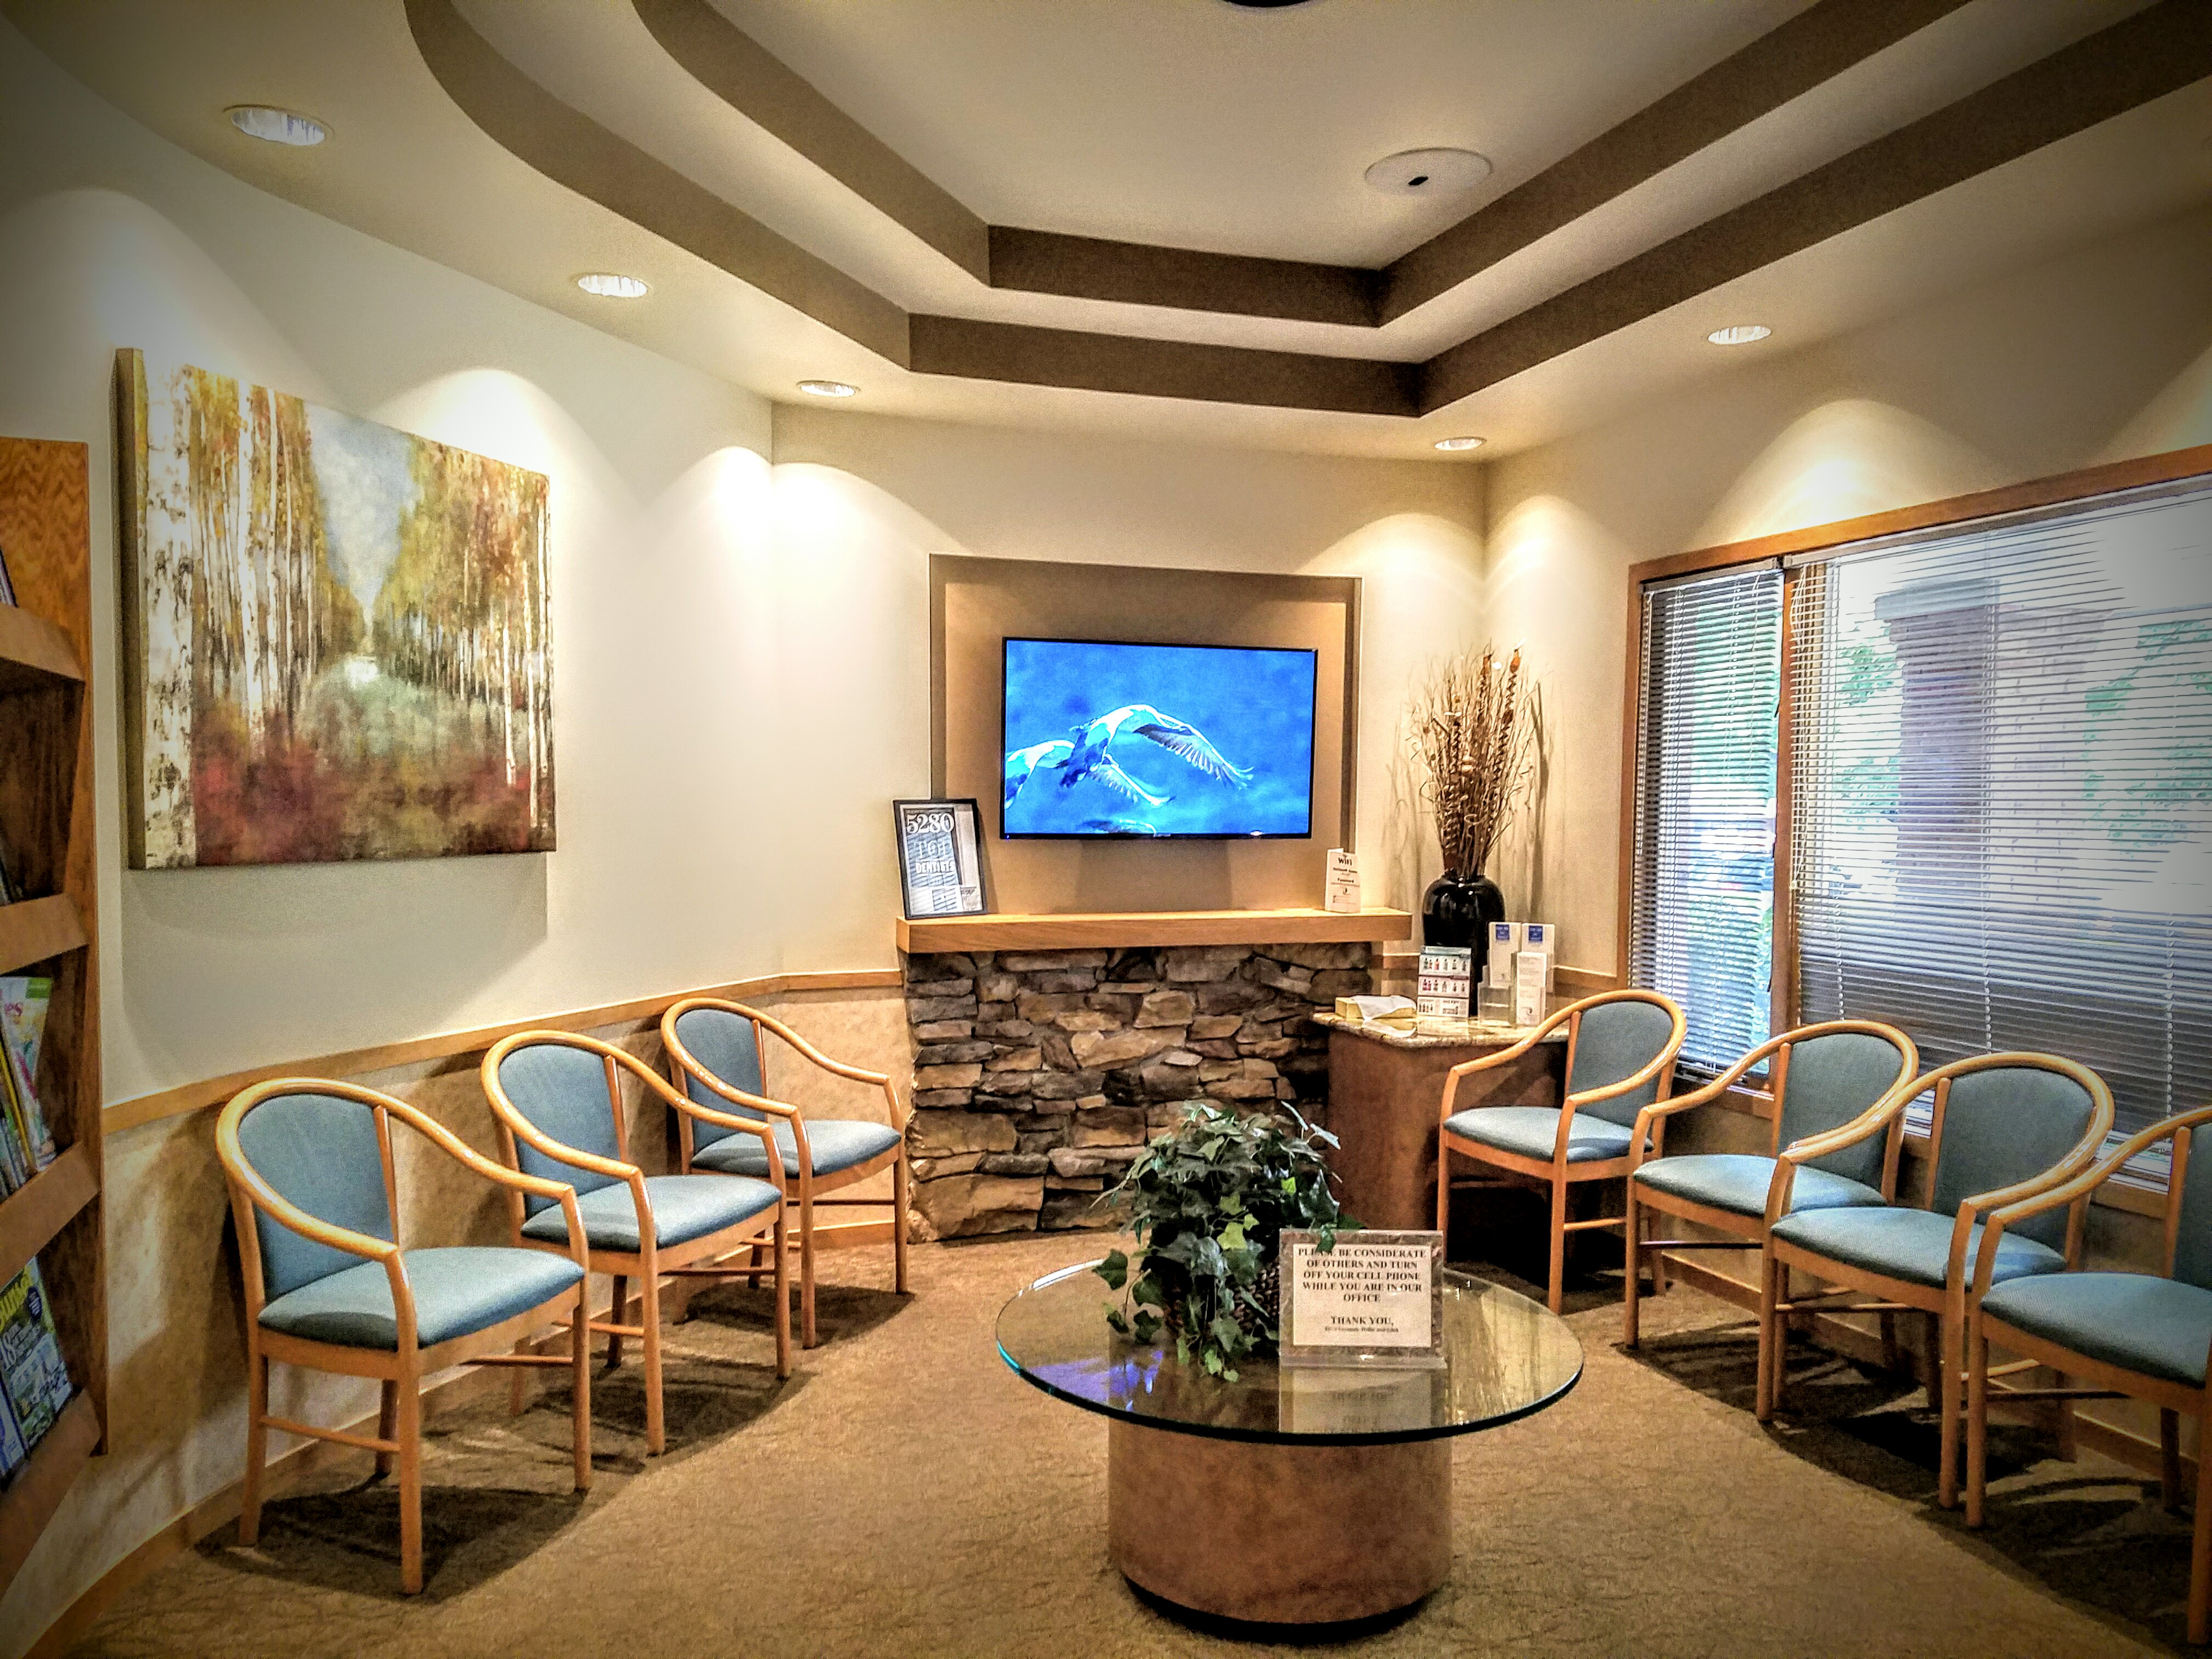 Periodontal Associates - The Dental Implant Team's waiting room in Aurora serving the Denver Metro Area